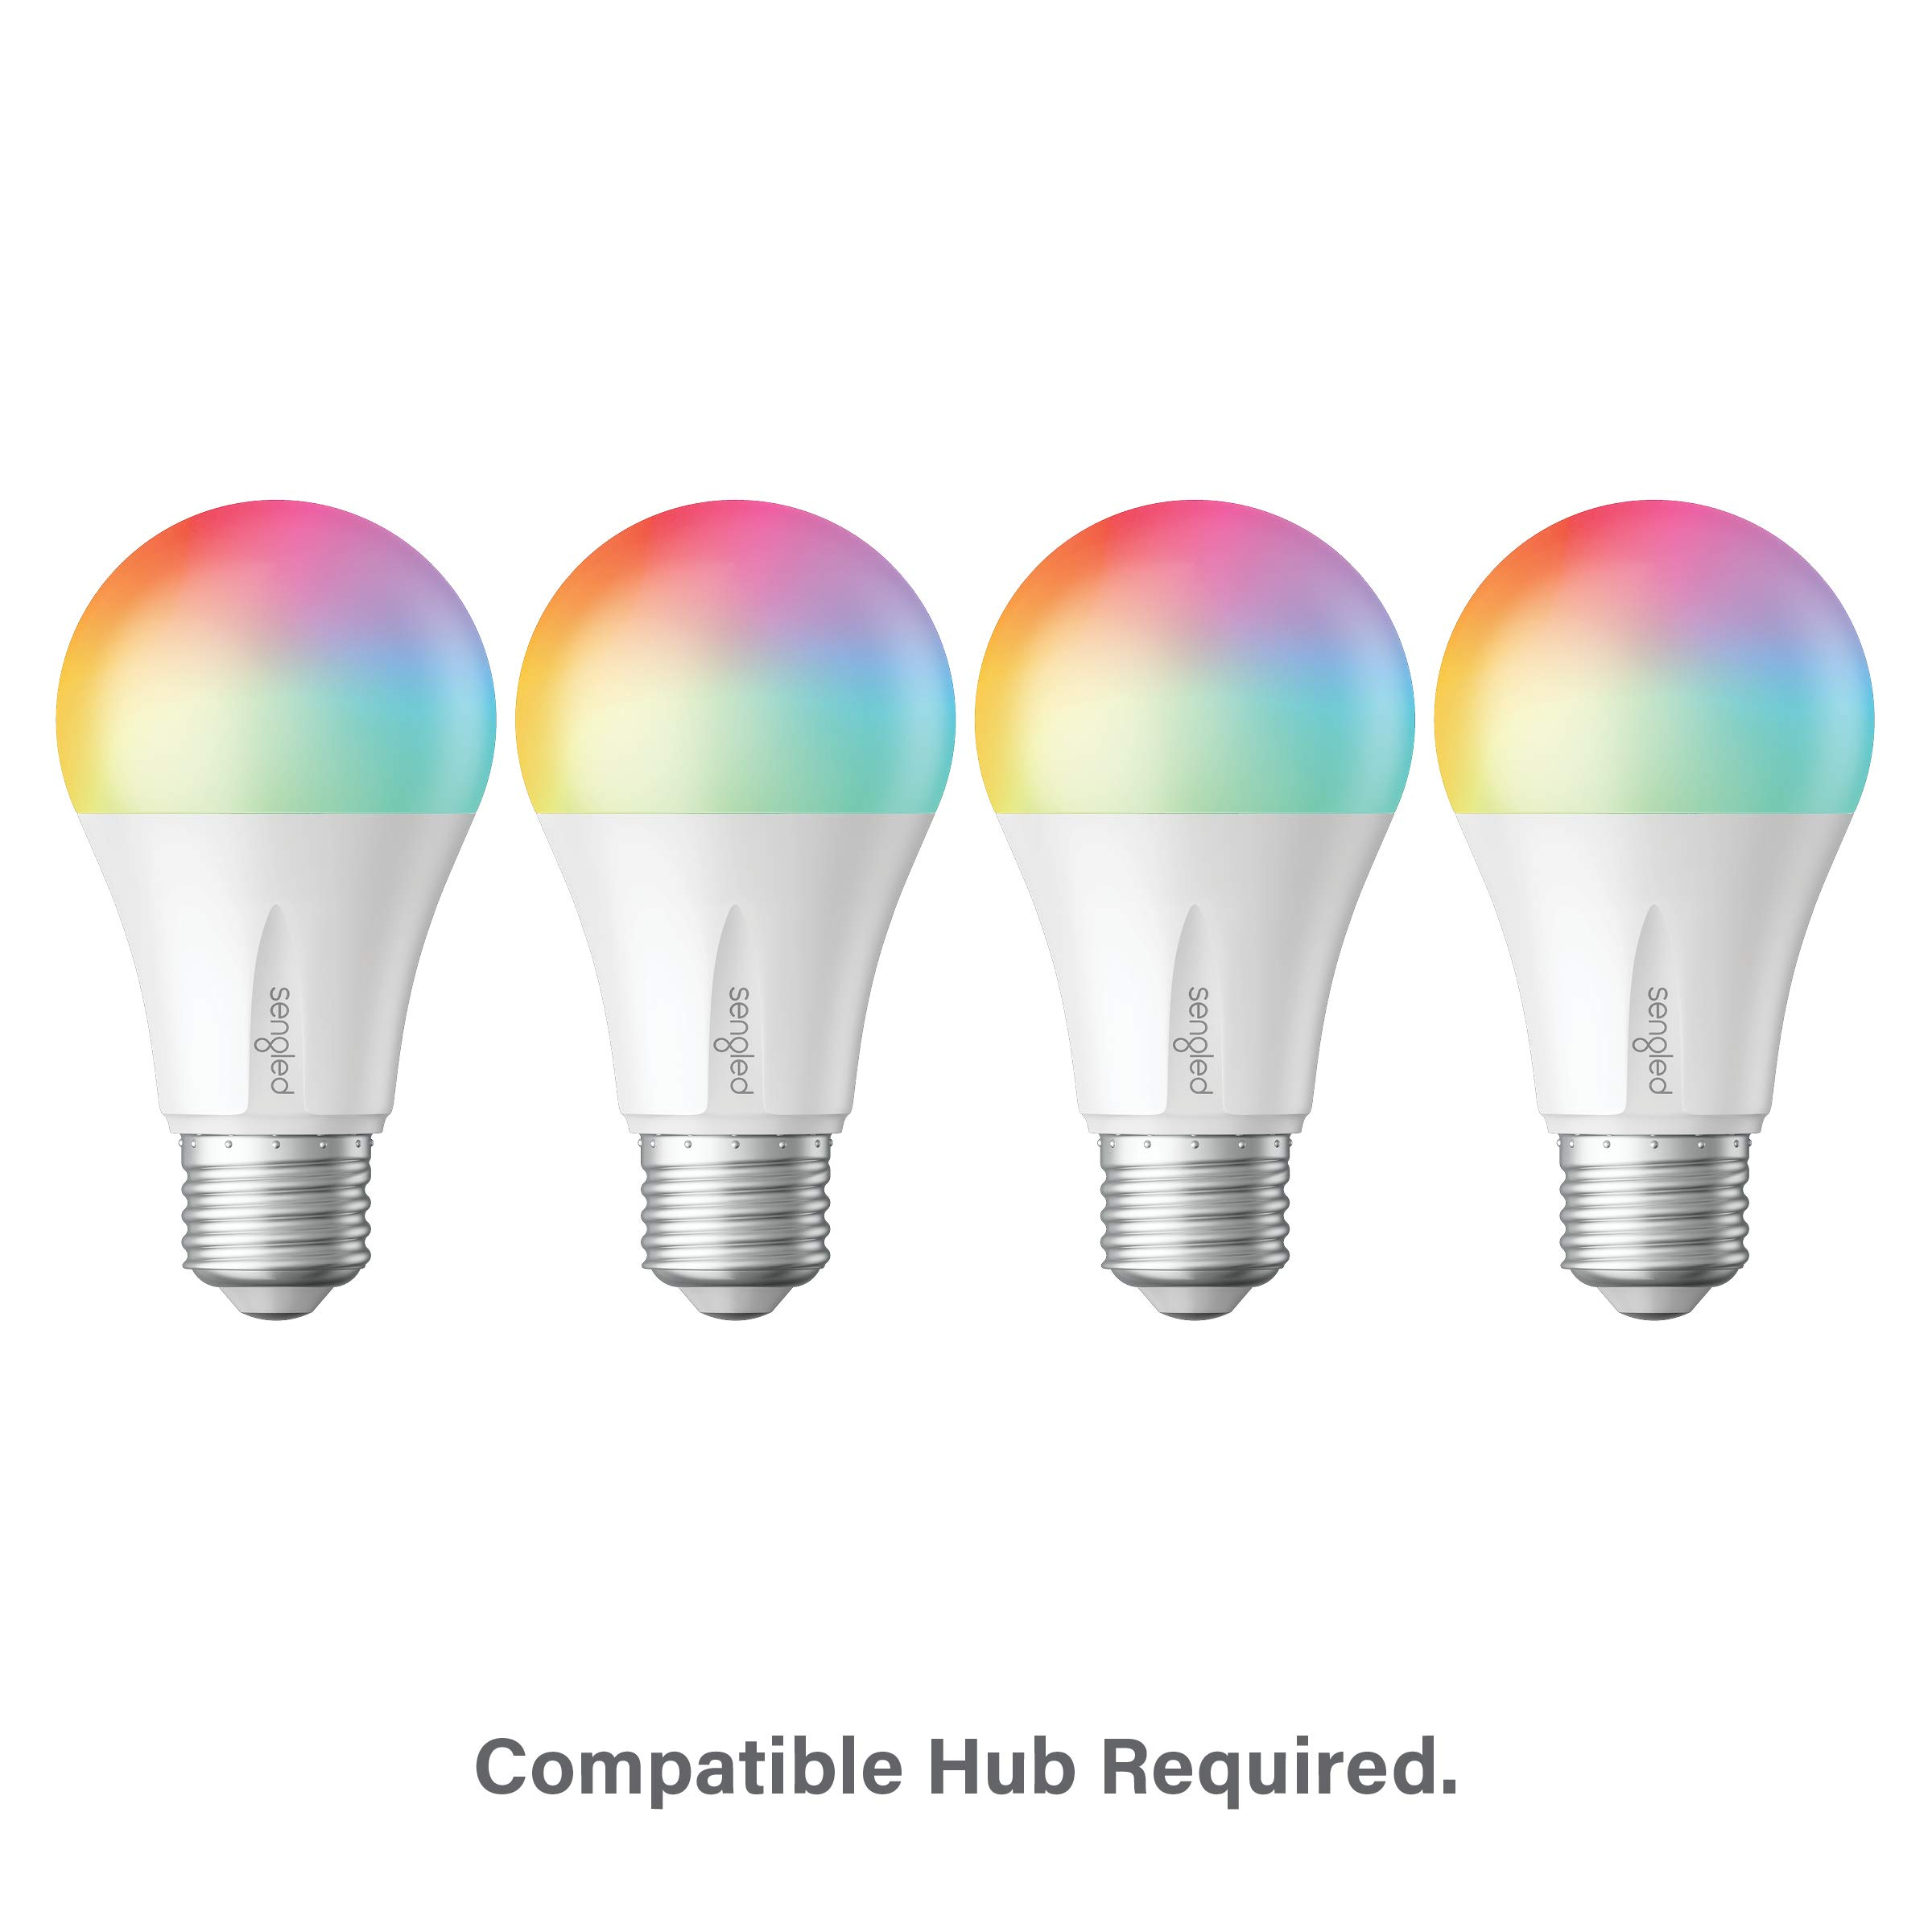 Sengled Smart LED Multicolor A19 Bulb, Hub Required, RGBW Color & Tunable White 2000-6500K, A19 60W Equivalent, Works with Alexa, Google Assistant & SmartThings, 4 Pack